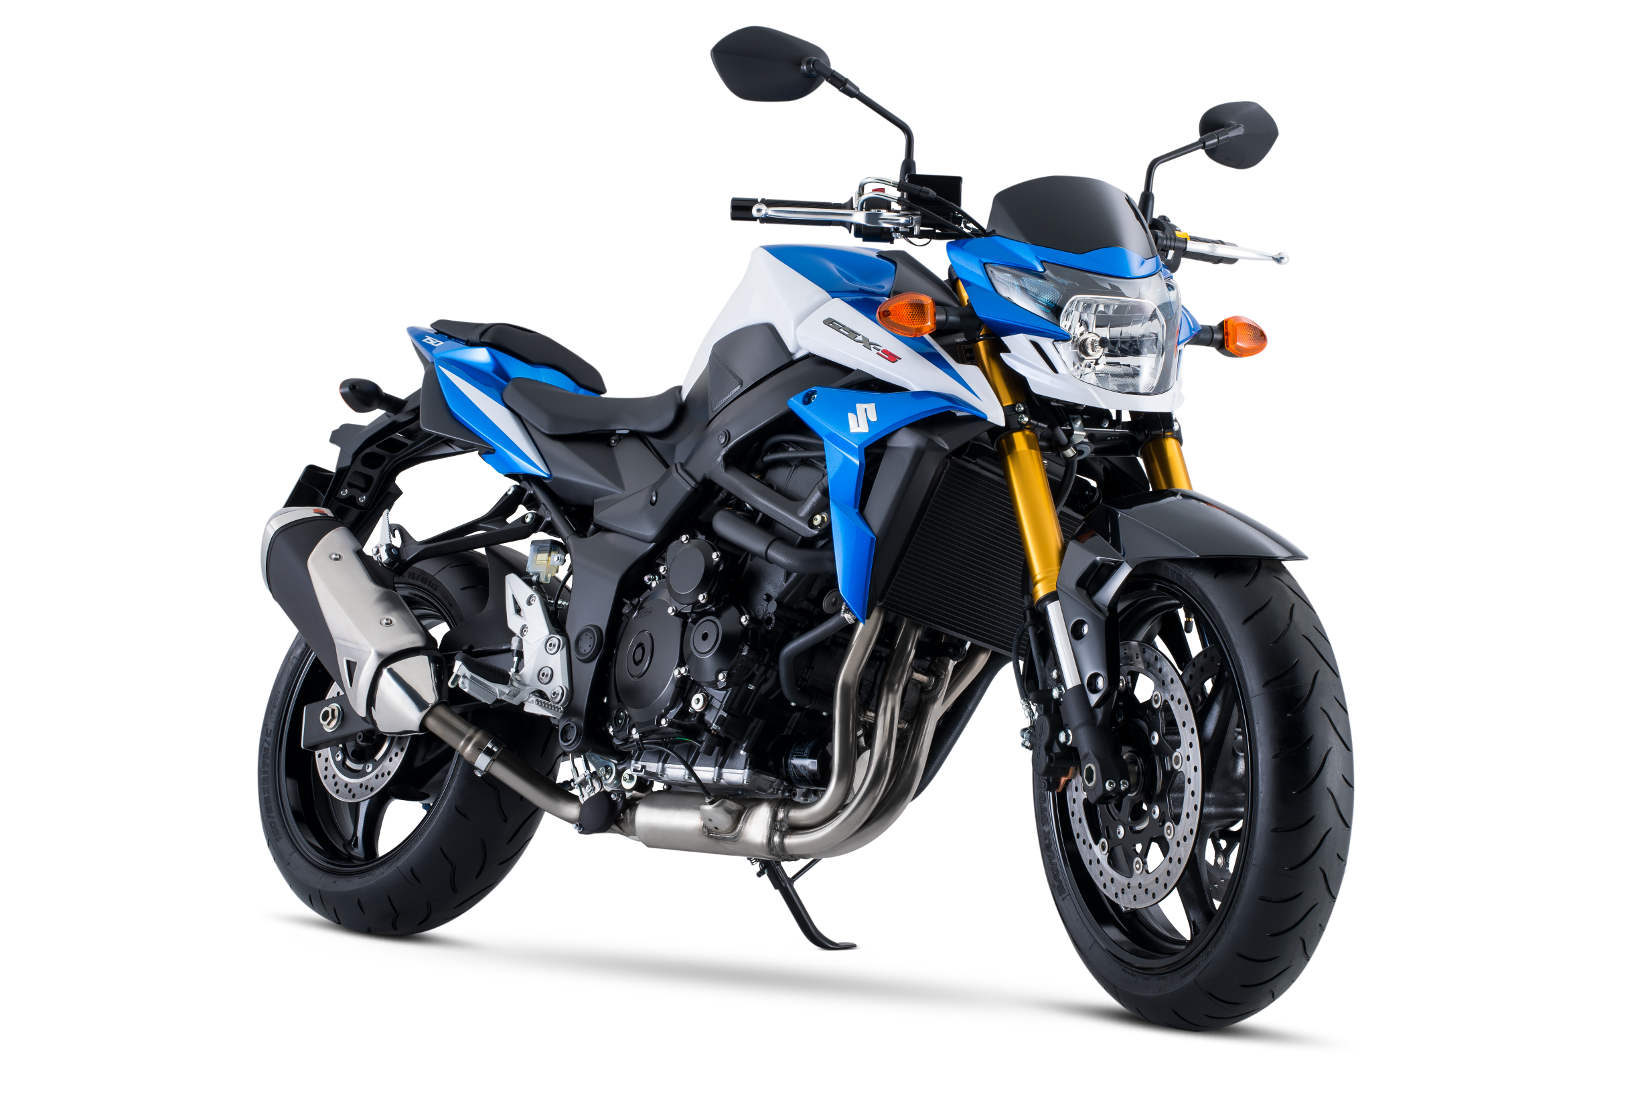 suzuki introduces 2015 gsx s750 for u s market. Black Bedroom Furniture Sets. Home Design Ideas